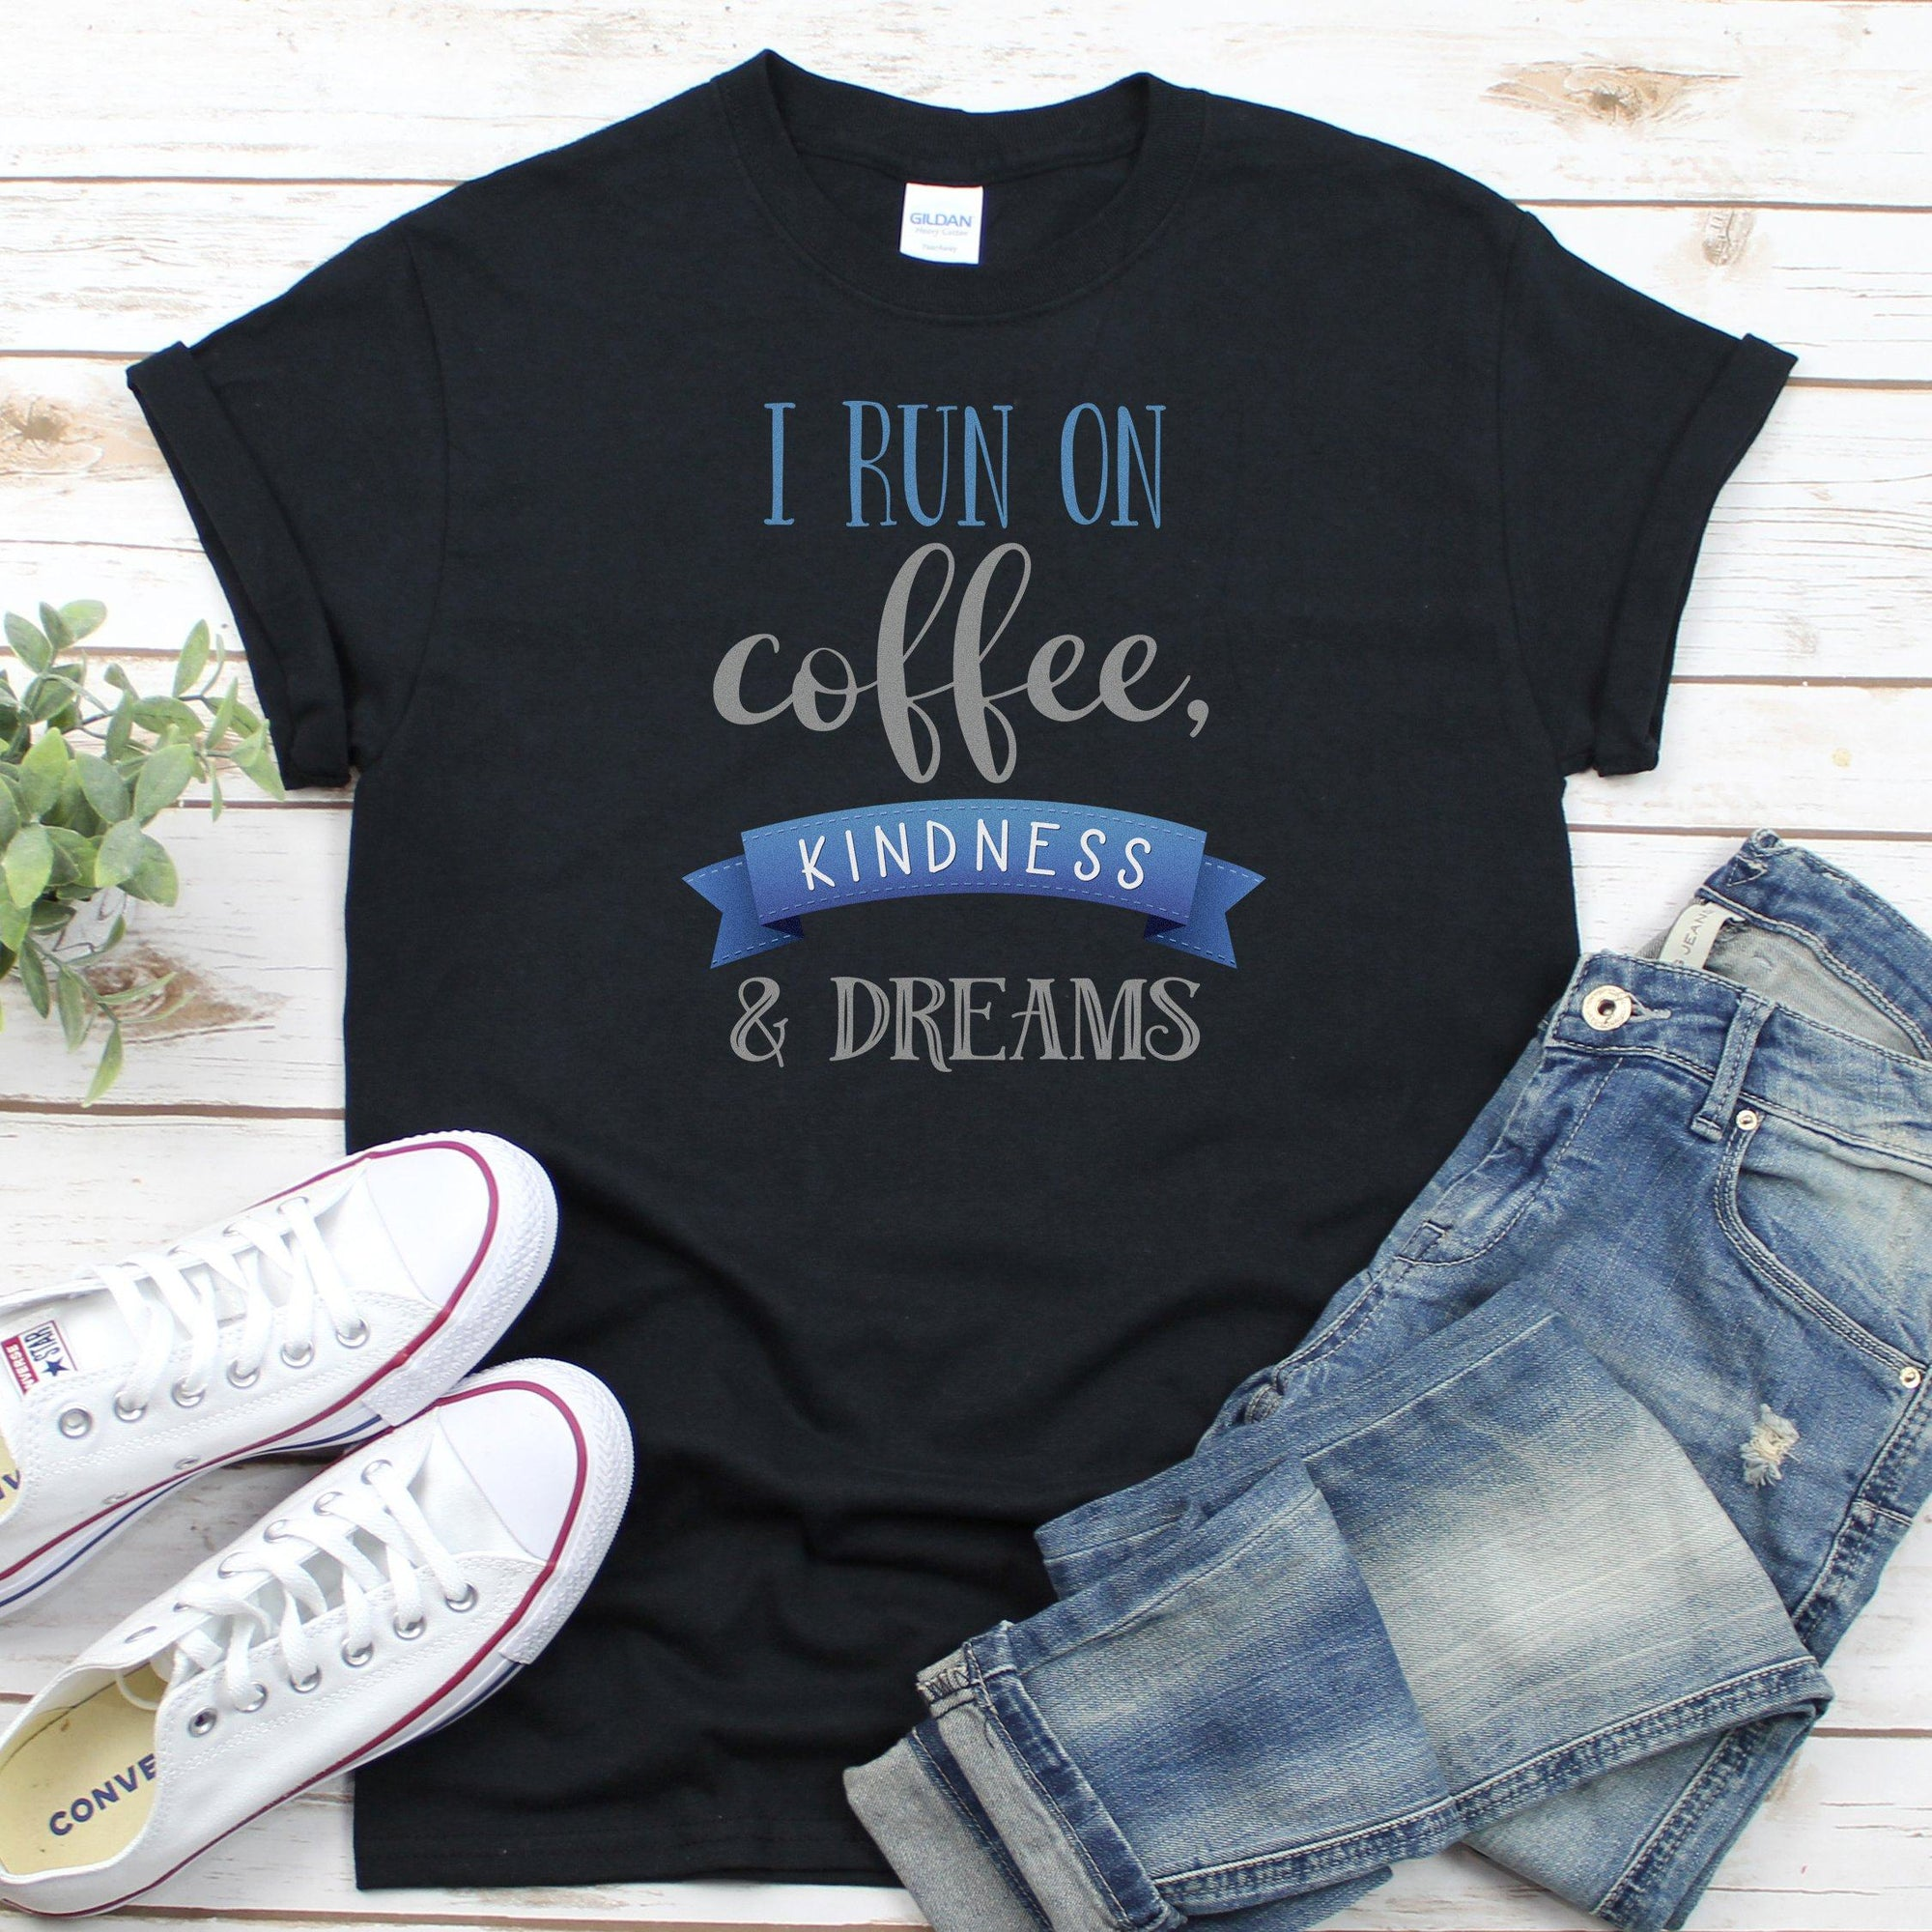 I Run On Coffee Kindness & Dreams • Women's DriFit Athletic Tee